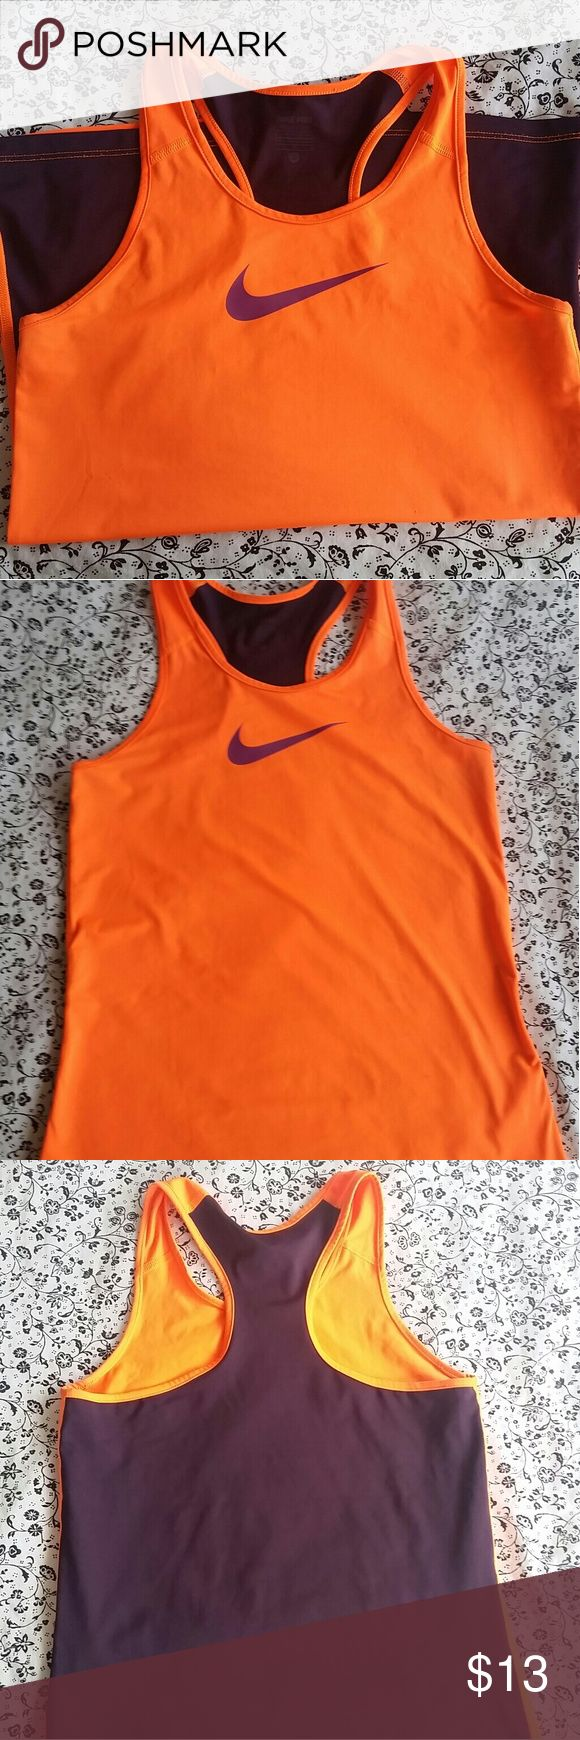 Nike Pro Workout Top Neon Orange Workout Top Dri-Fit  Barely worn - Good condition  Size is Youth L but fits as Adult Small Material: 84% Polyester/ 16% Elastane Nike Tops